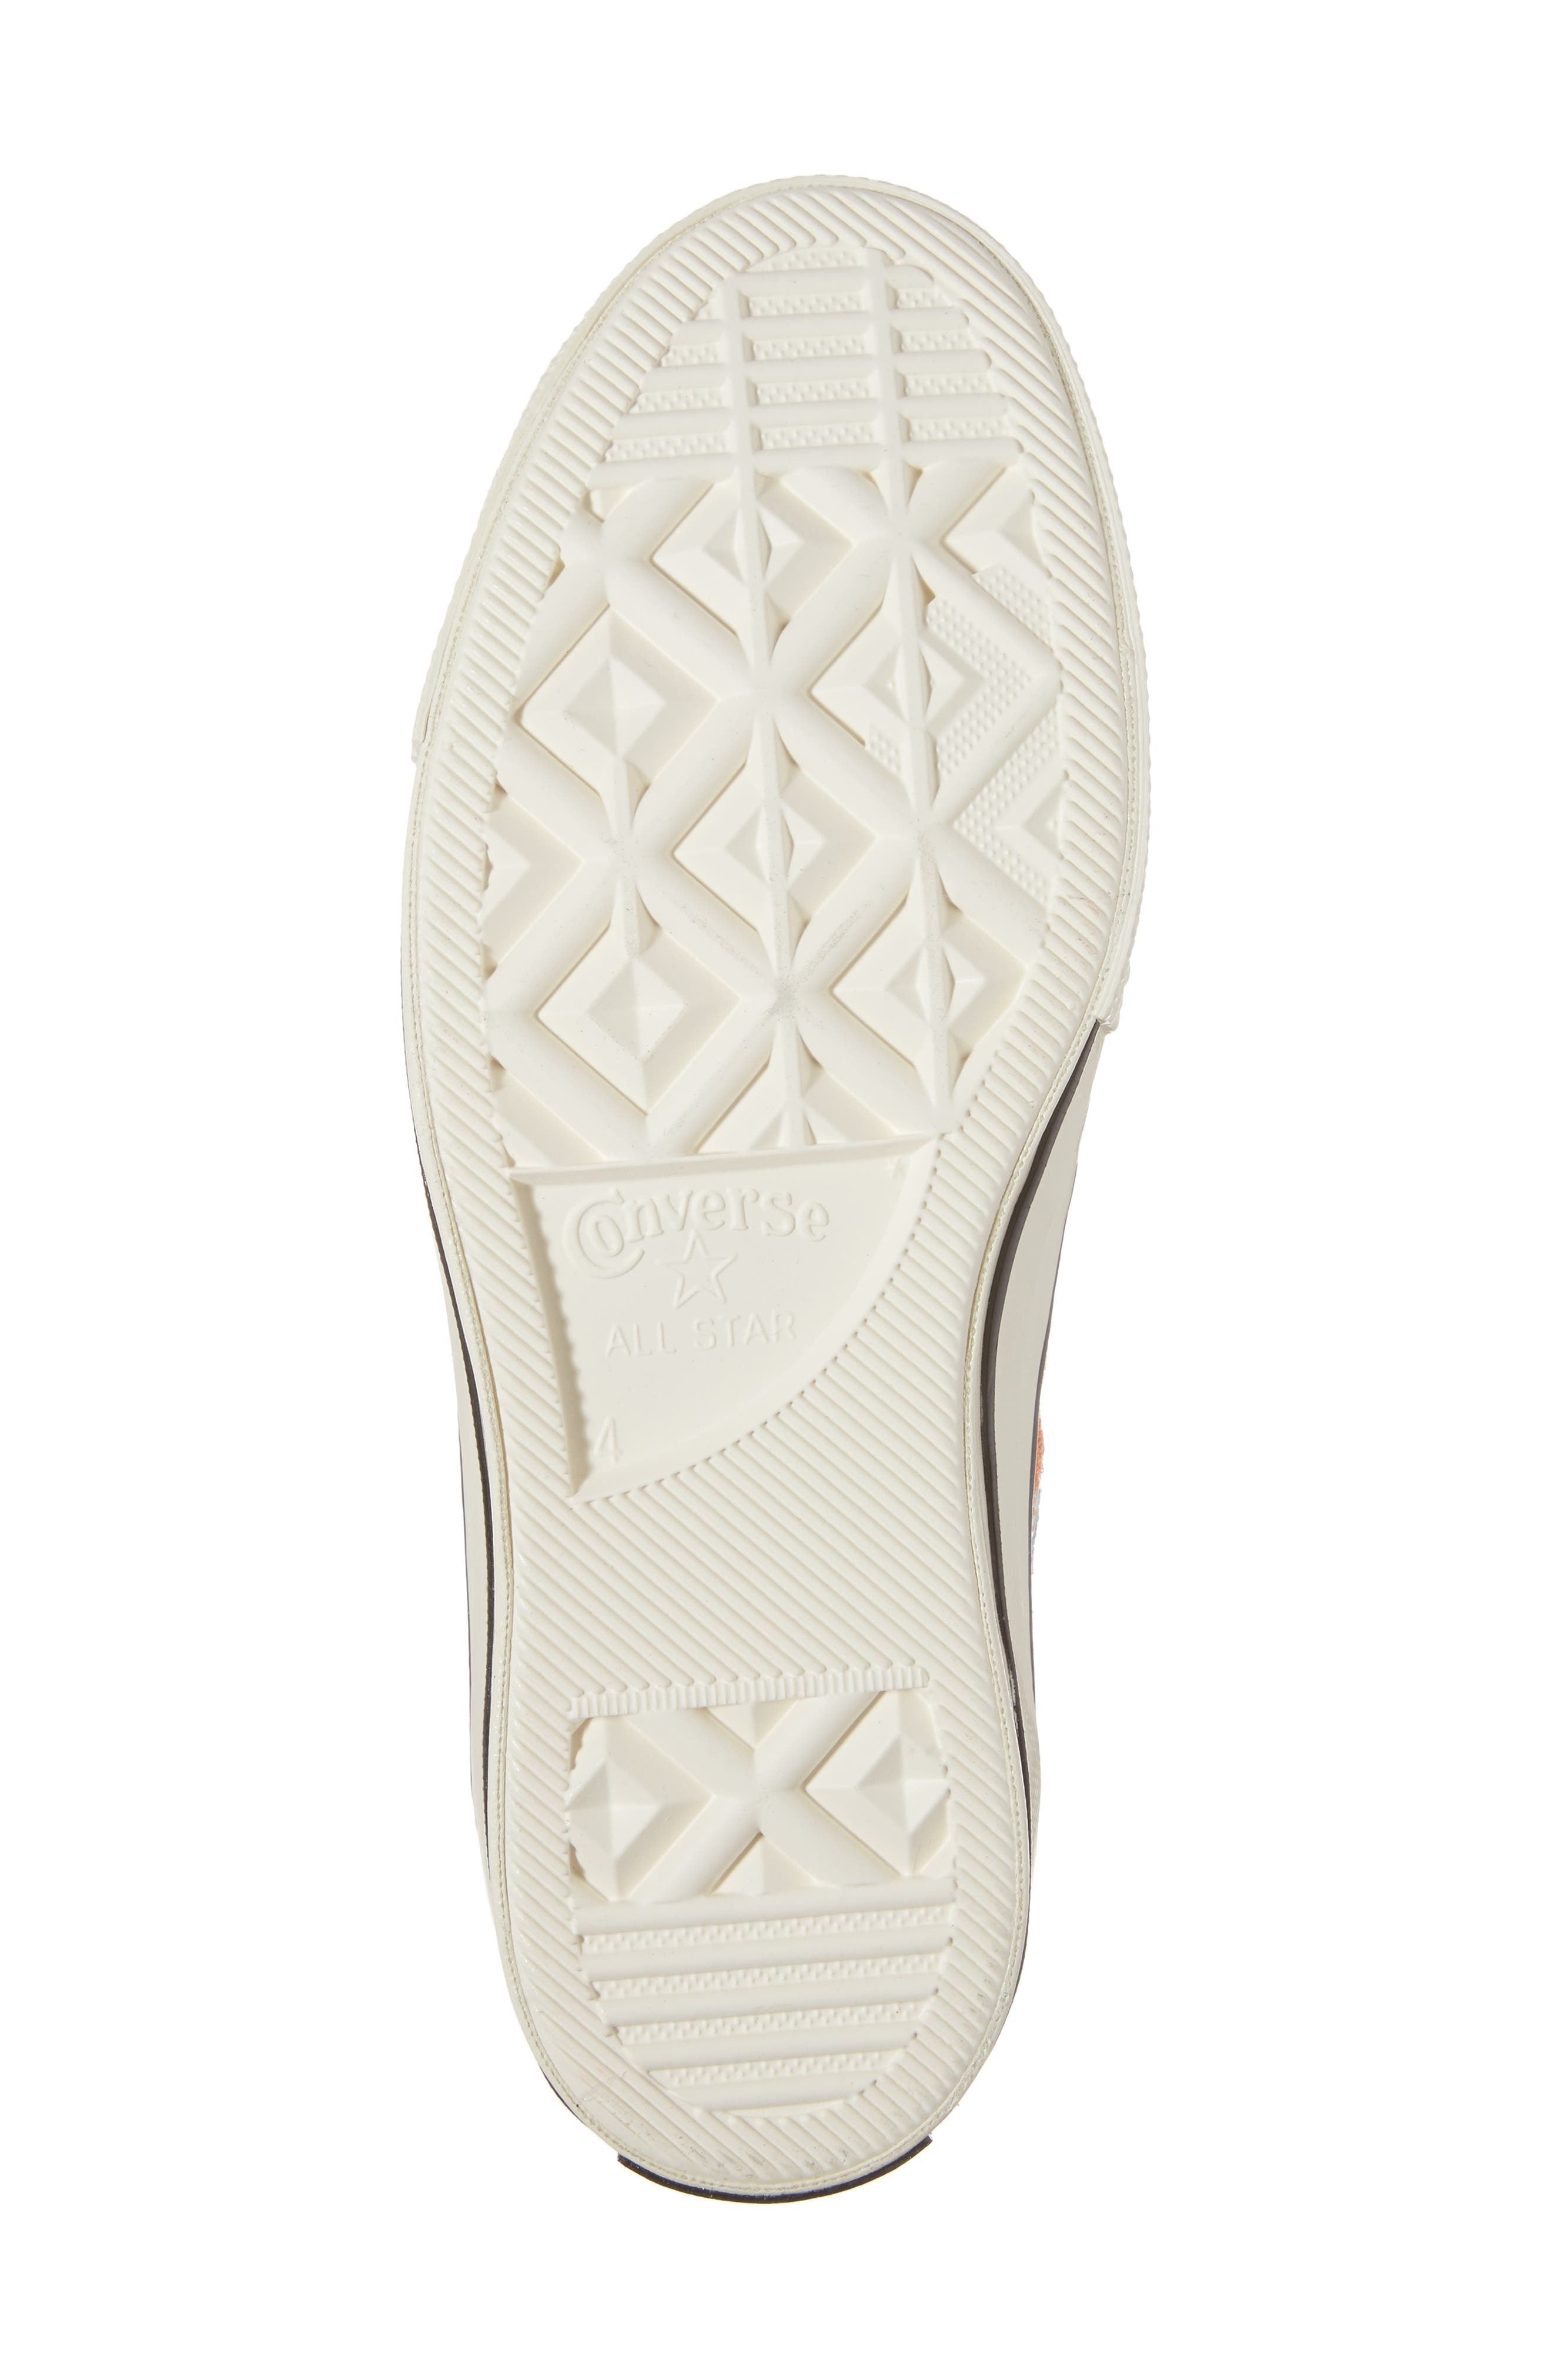 x Mara Hoffman All Star<sup>®</sup> Embroidered High Top Sneaker,                             Alternate thumbnail 12, color,